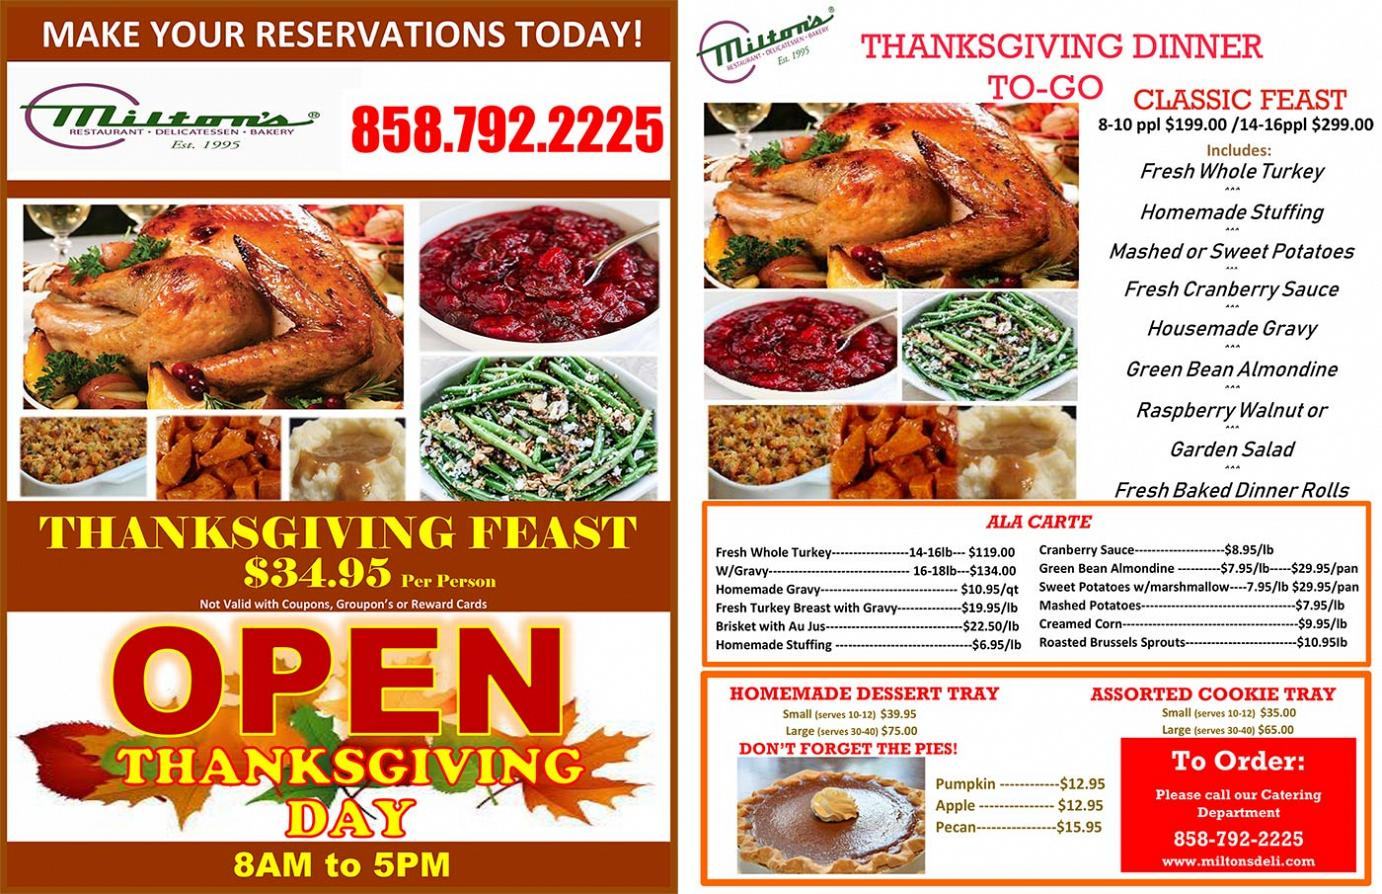 Reservations and Thanksgiving Holiday Flyers